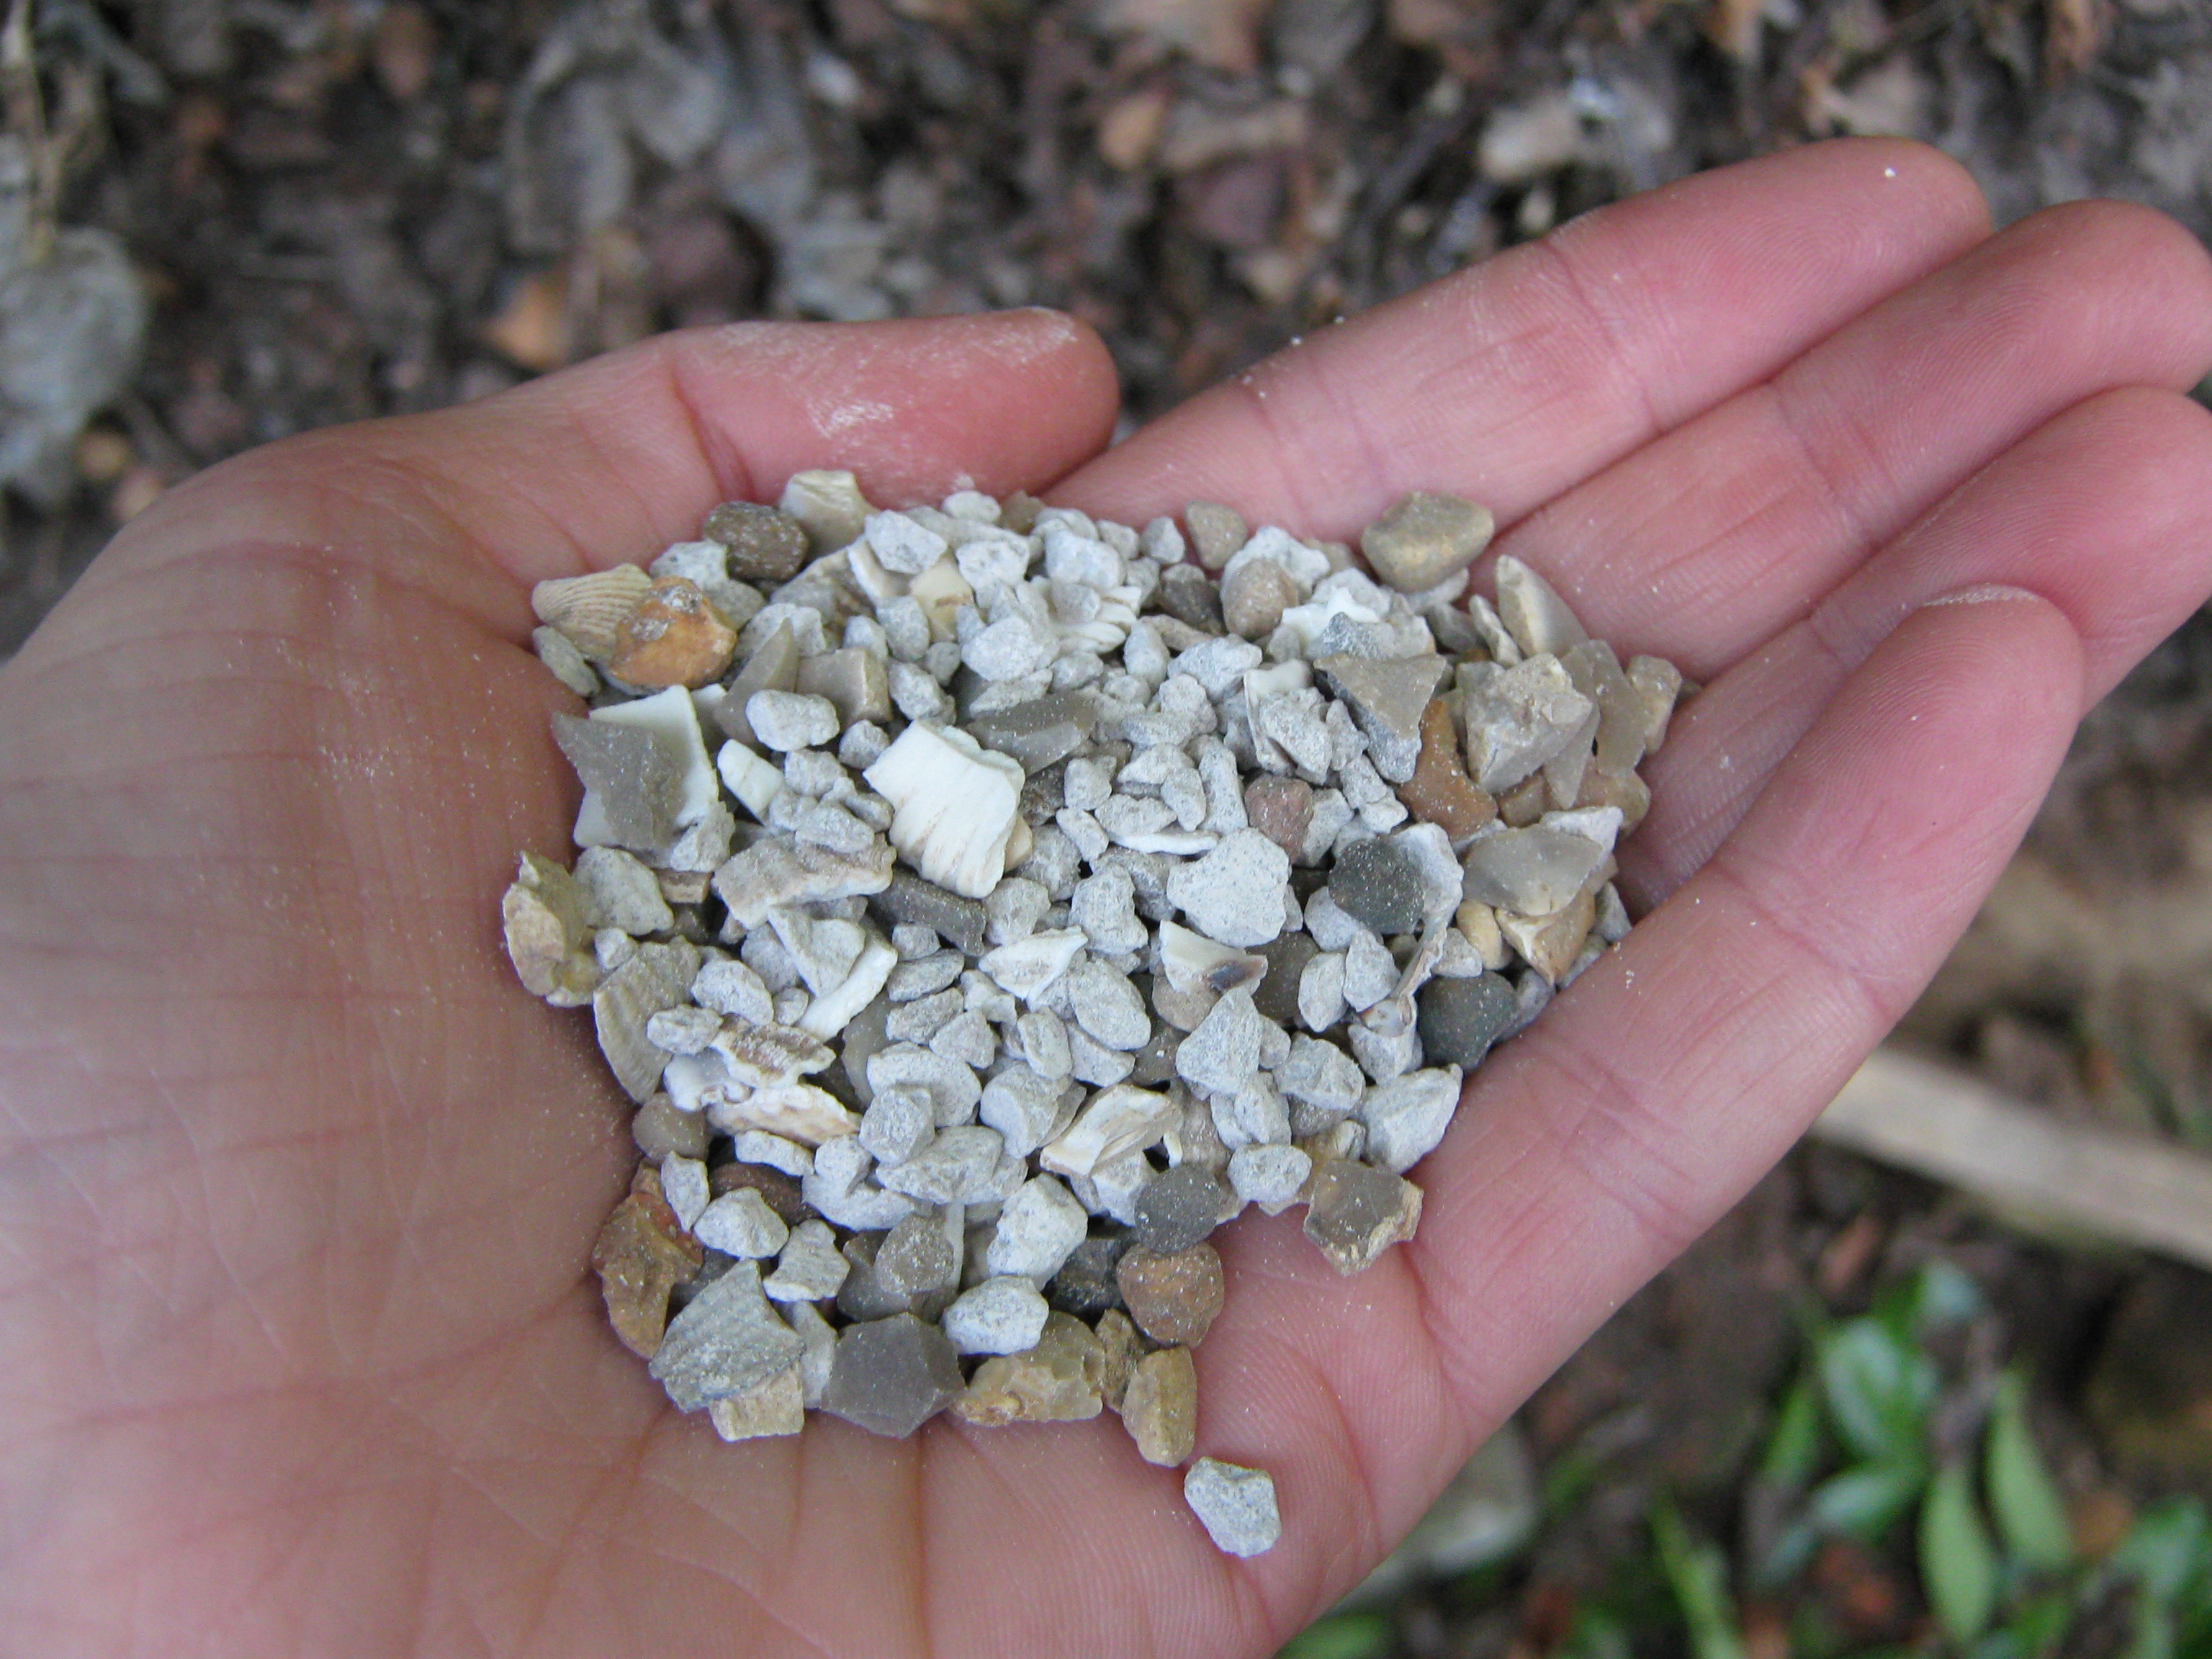 A close up of some seashell grit used for chicken feed